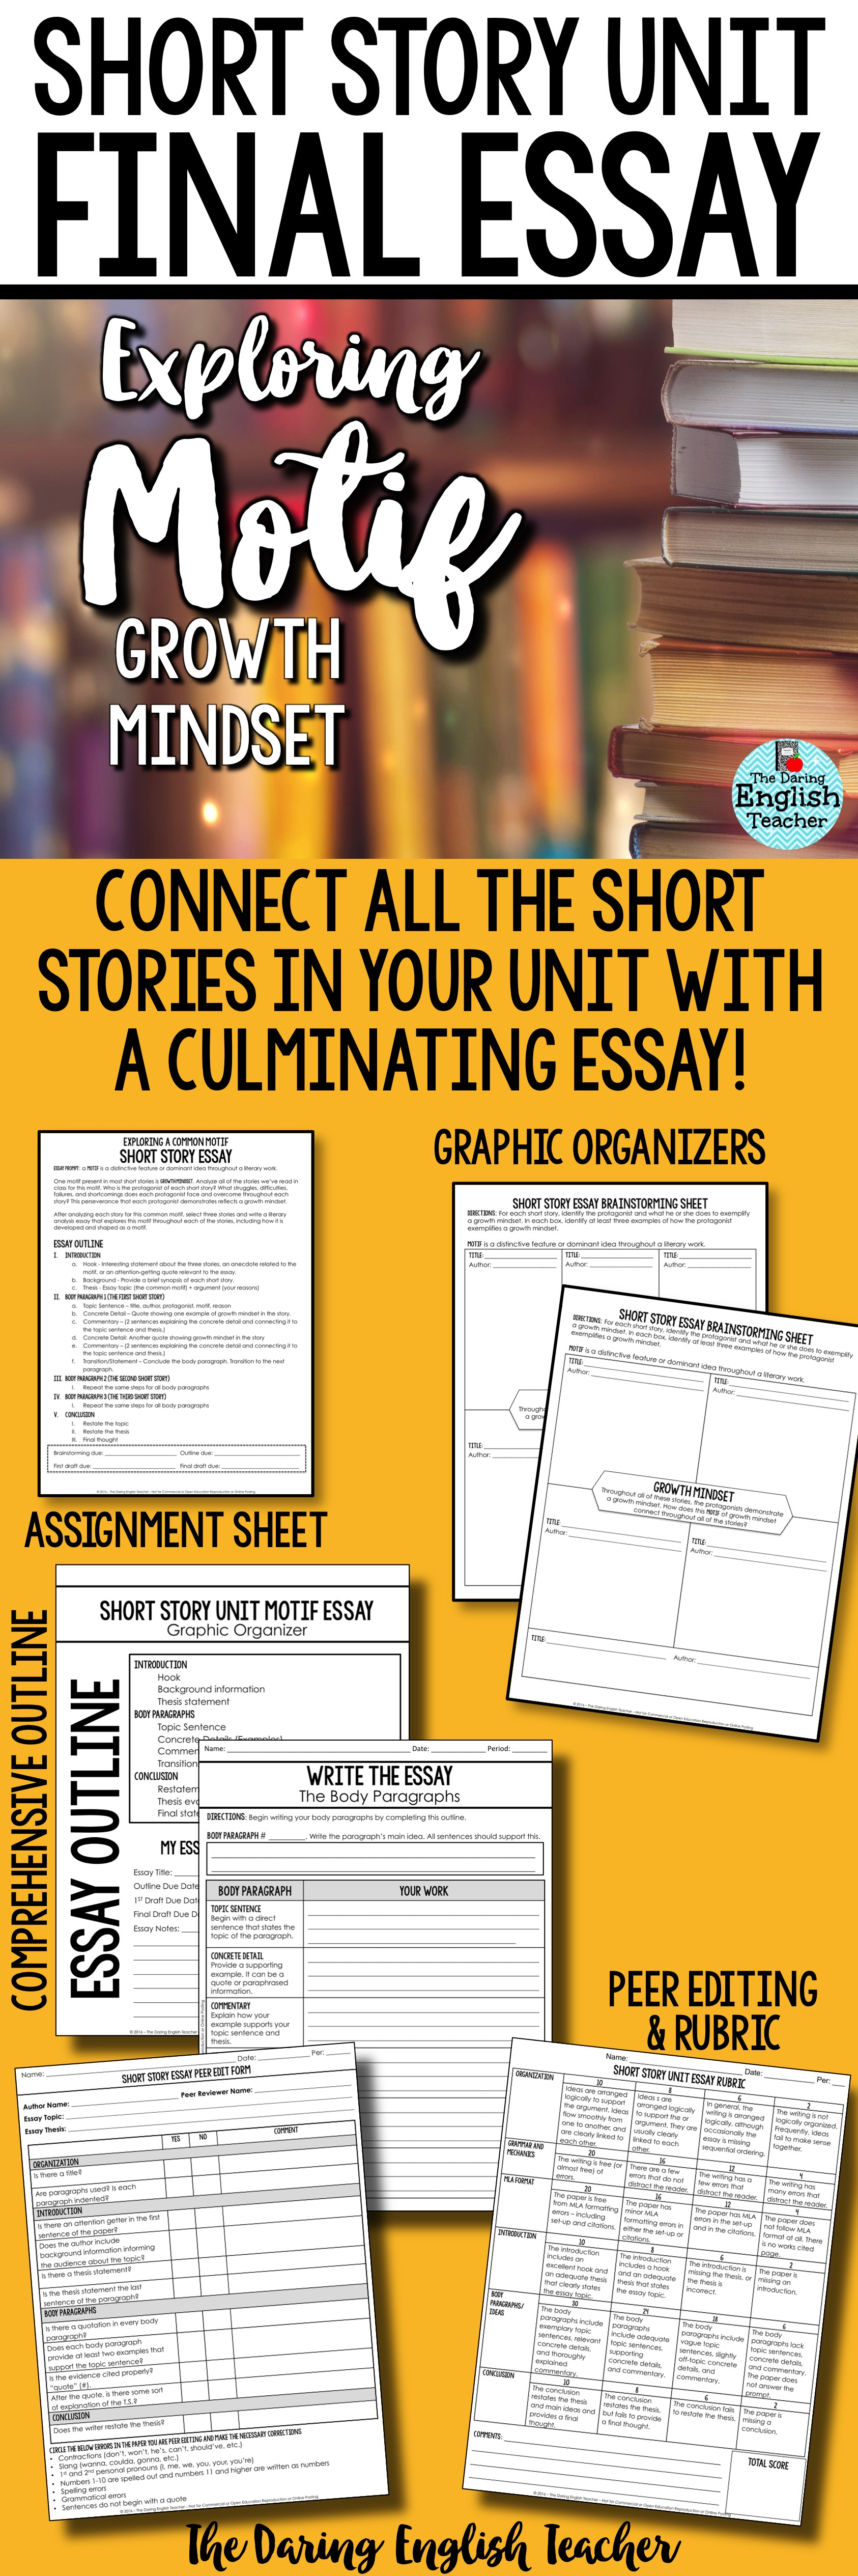 Explore And Cultivate A Growth Mindset In Your Secondary English Classroom  With This Short Story Essay